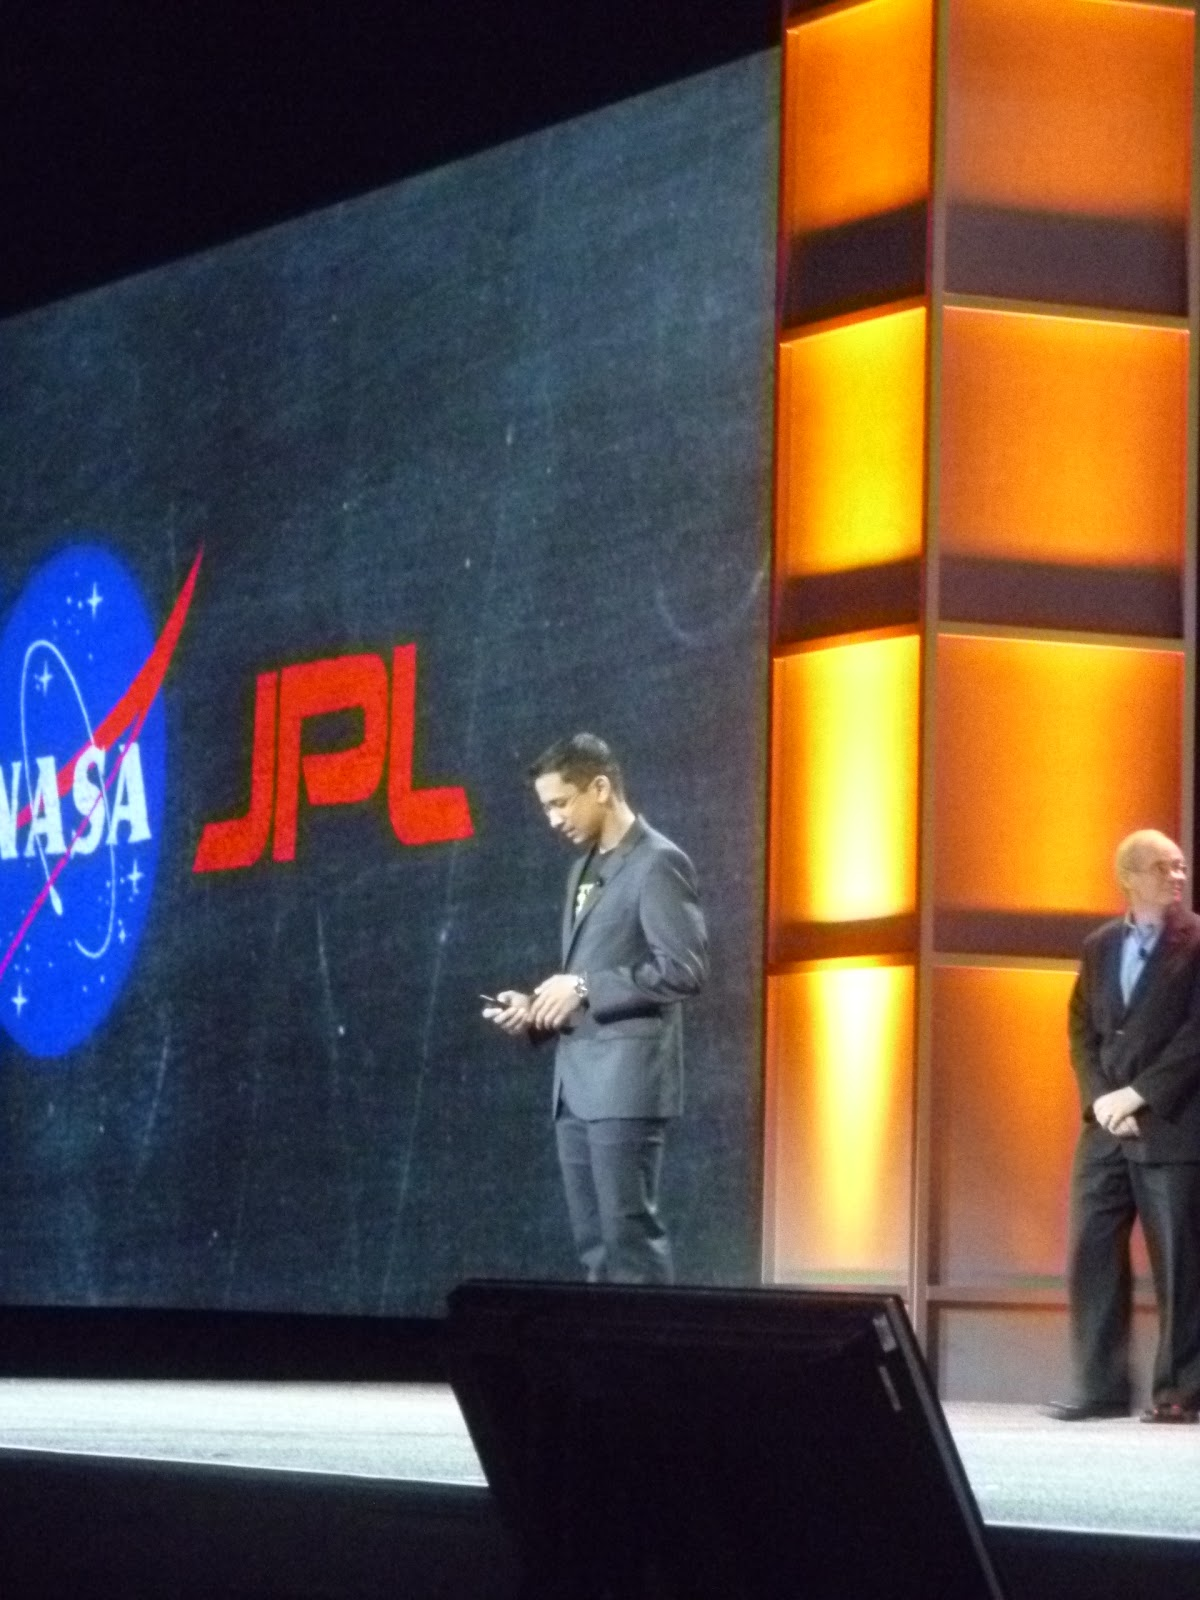 aws-amazon-web-services-reinvent-blog-domenech-org-nasa-jpl